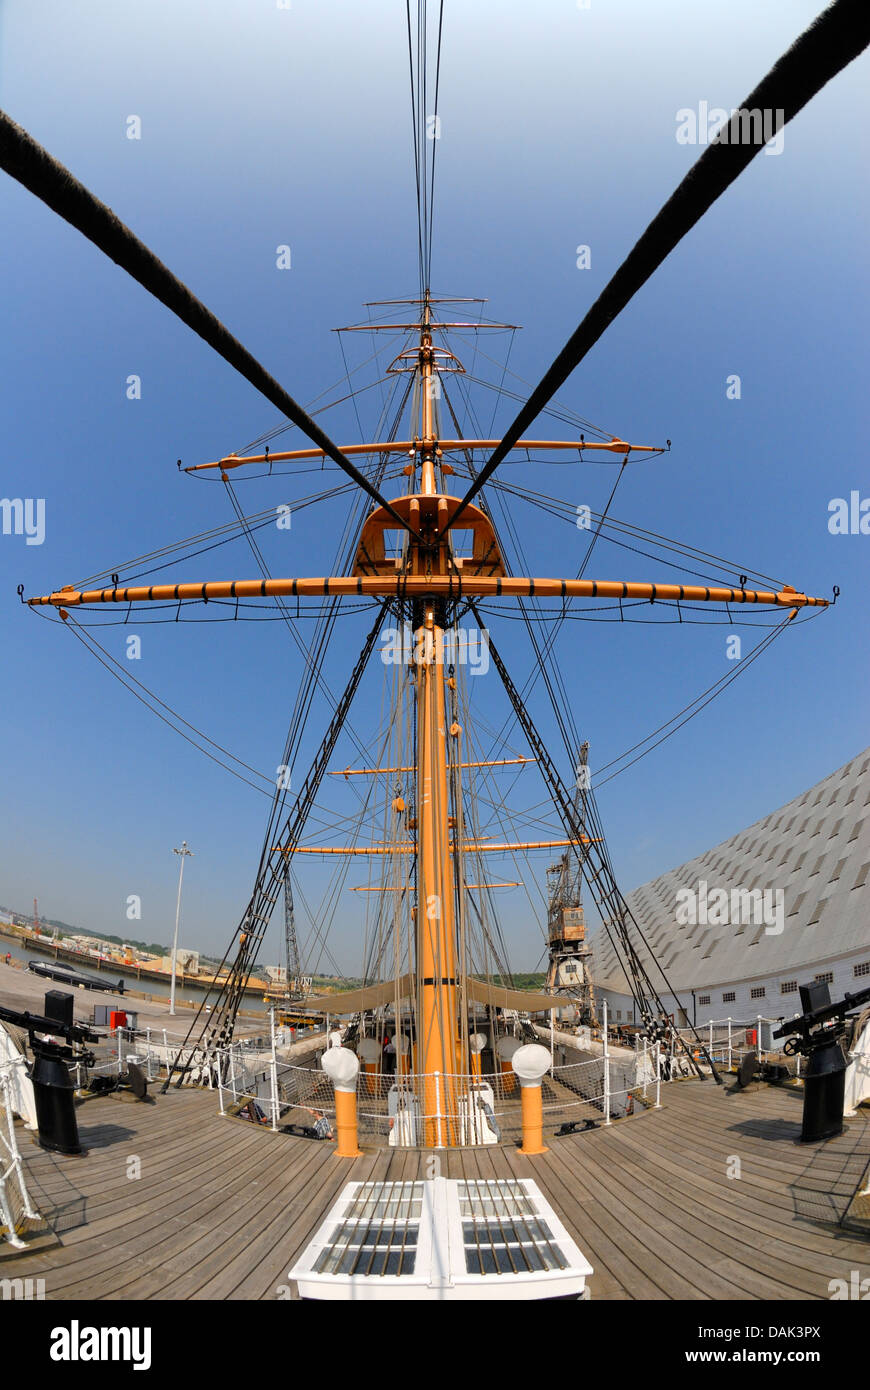 Chatham, Kent, England. Chatham Historic Dockyard. HMS Gannet (1878) Mast and rigging - Stock Image